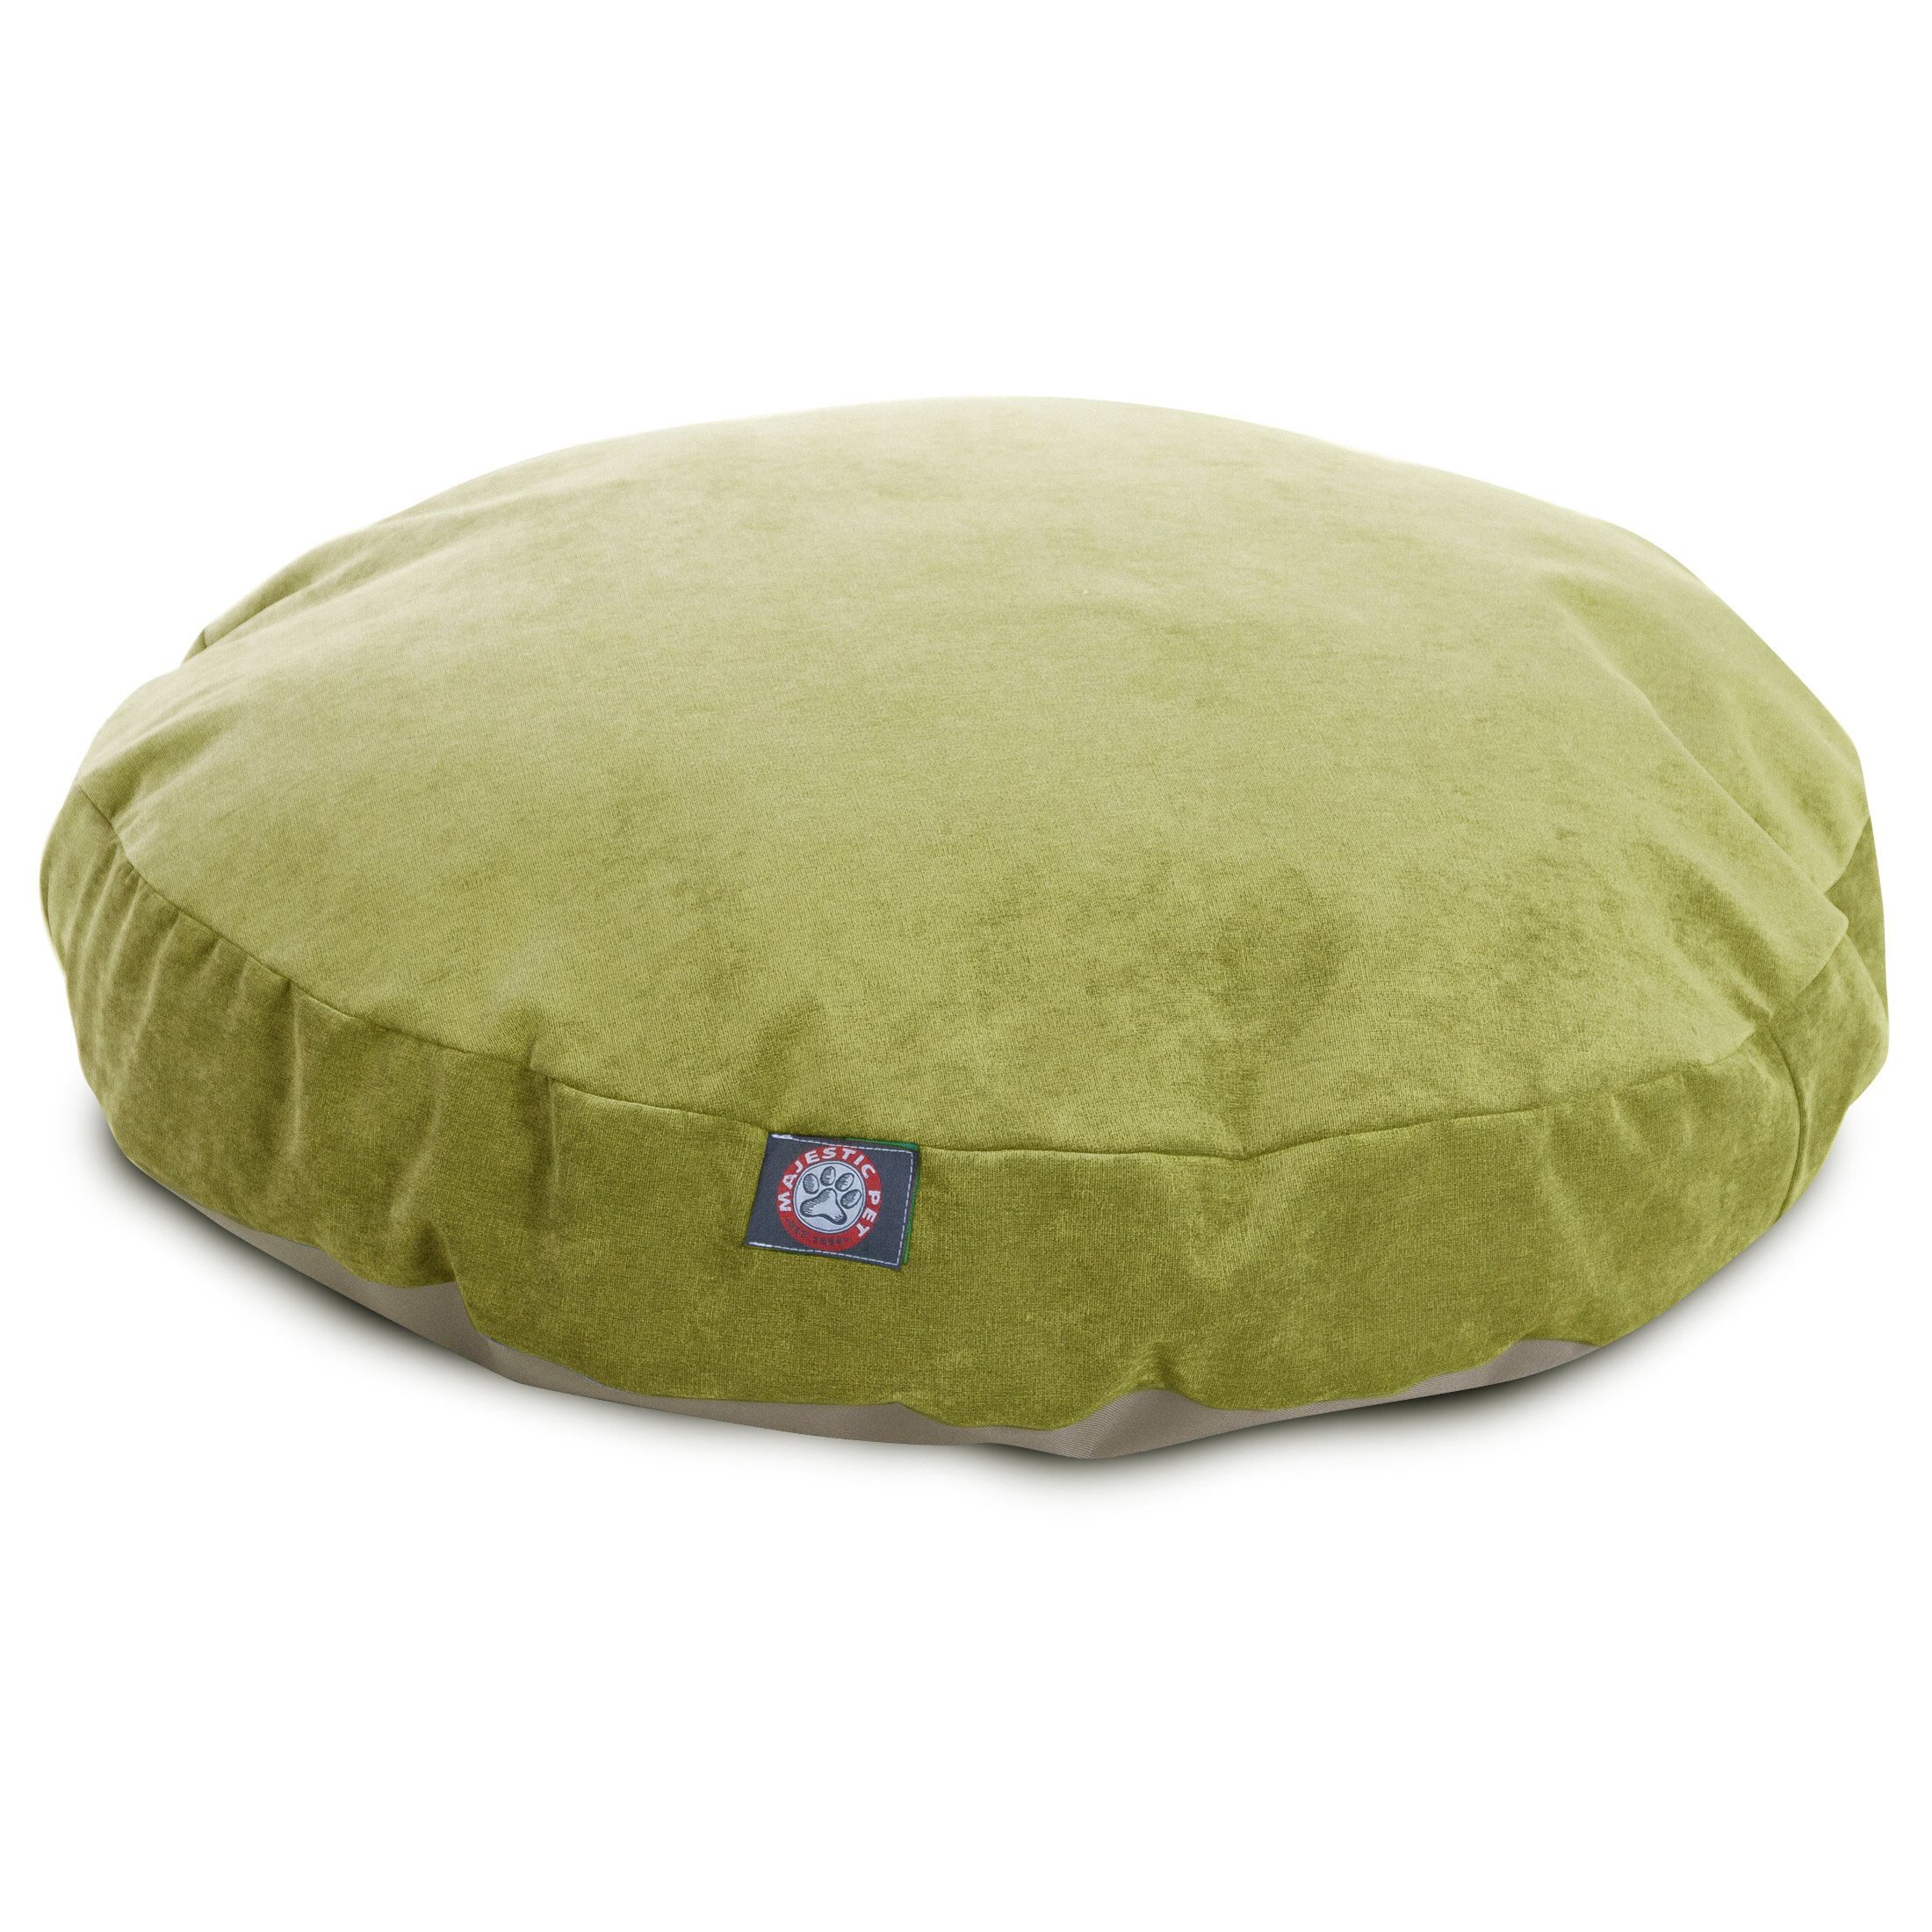 Villa Round Pet Bed Color: Navy, Size: Medium - 36